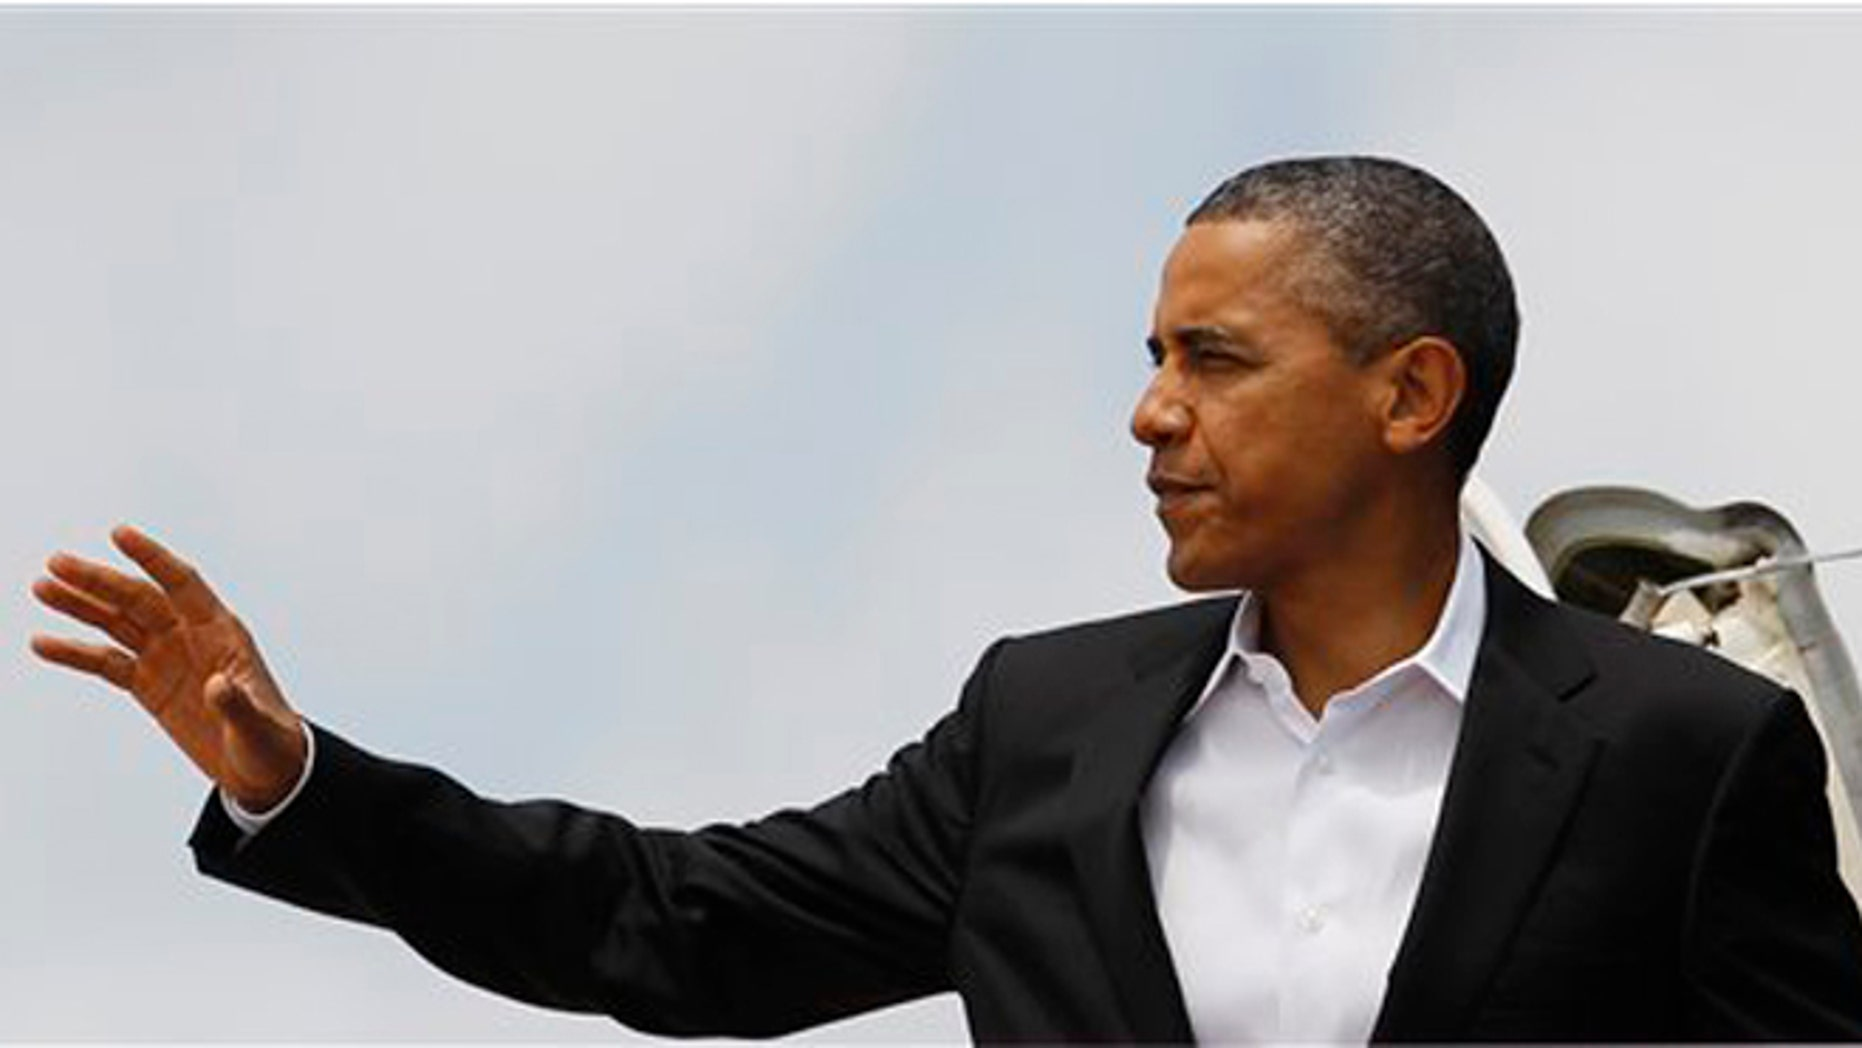 Aug. 11, 2012: President Barack Obama moves to wave as he boards Air Force One, in Andrews Air Force Base, Md., en route to Chicago.